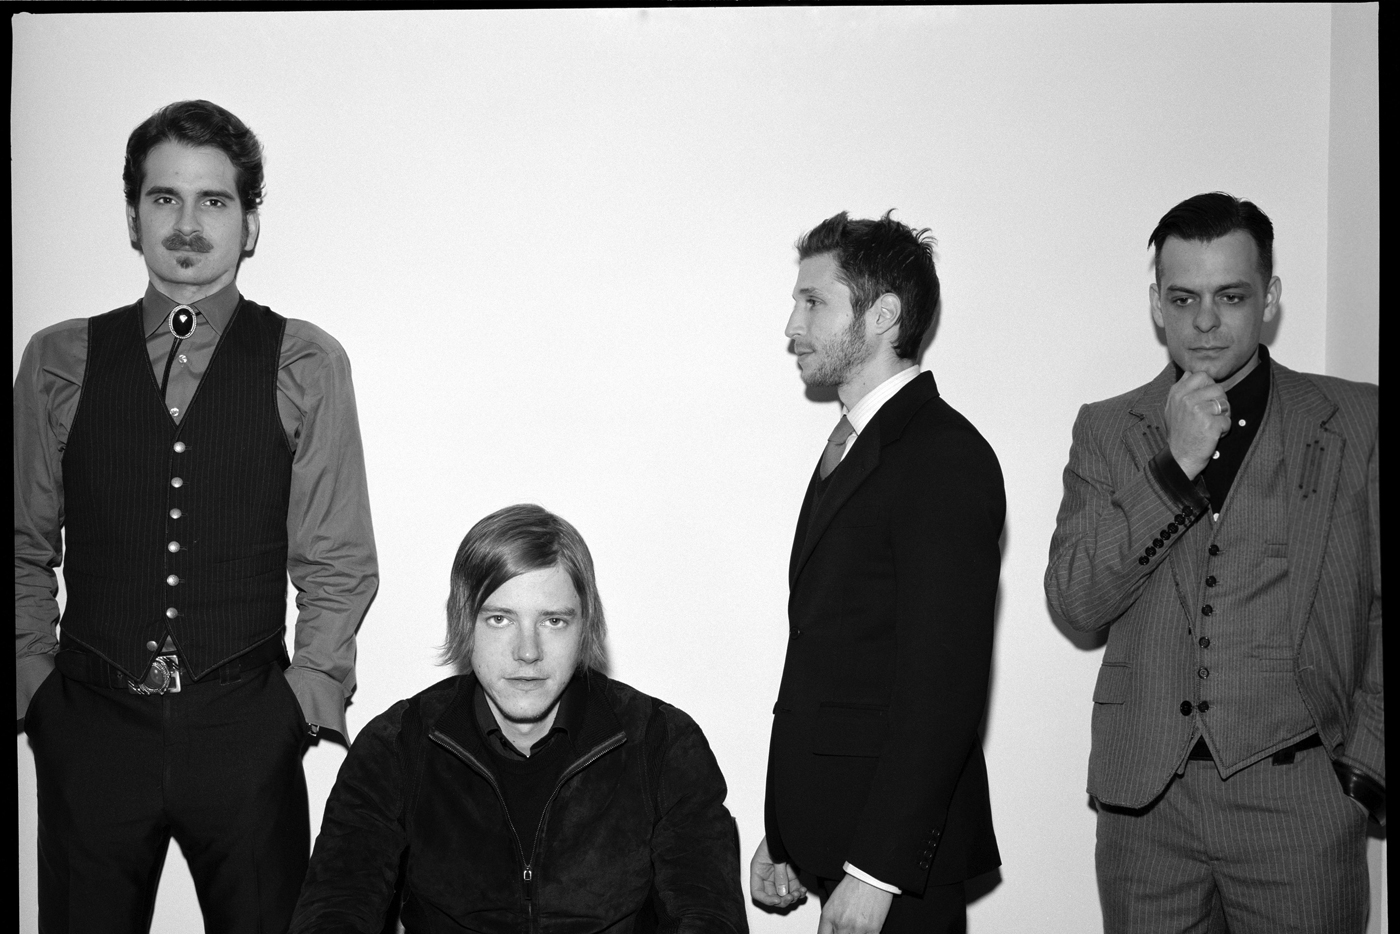 Interpol